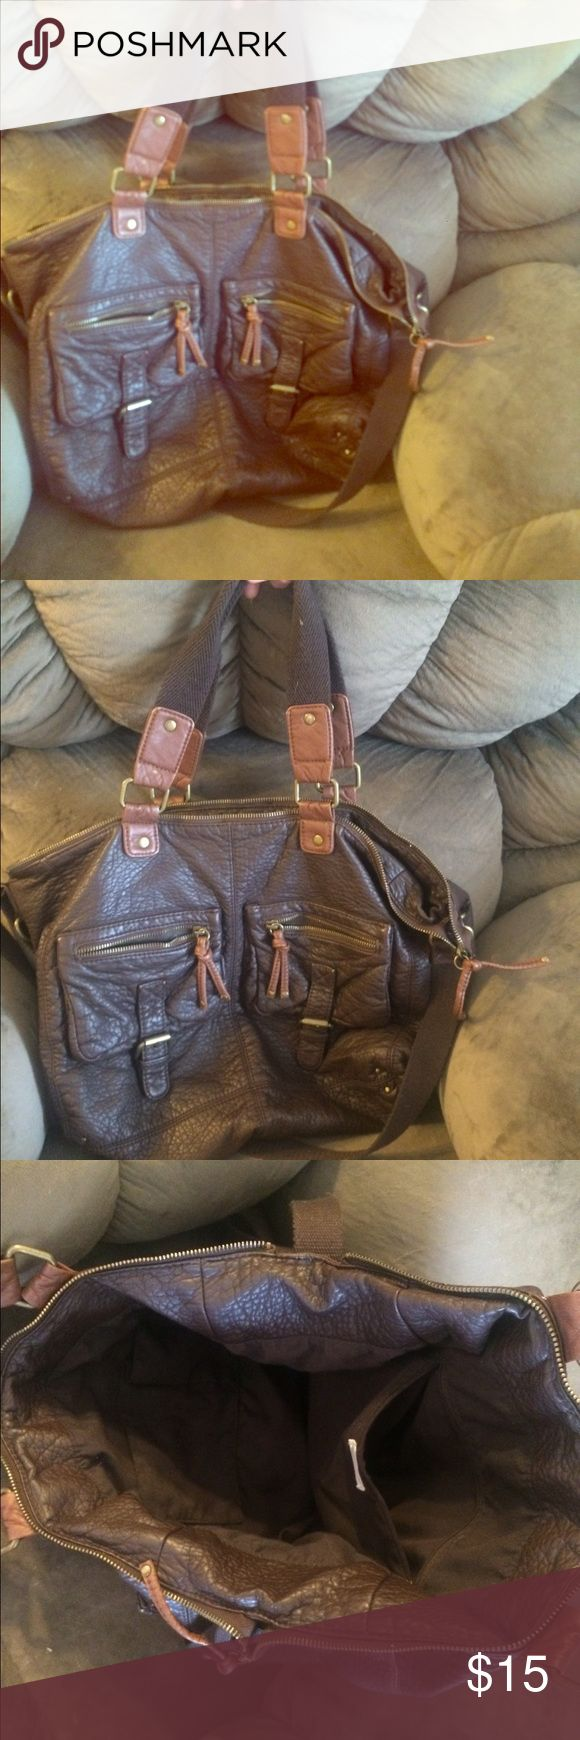 American eagle brown tote American eagle brown tote! Can carry as purse or over night bag! Super clean and great condition! Bundle for discounts American Eagle Outfitters Bags Shoulder Bags